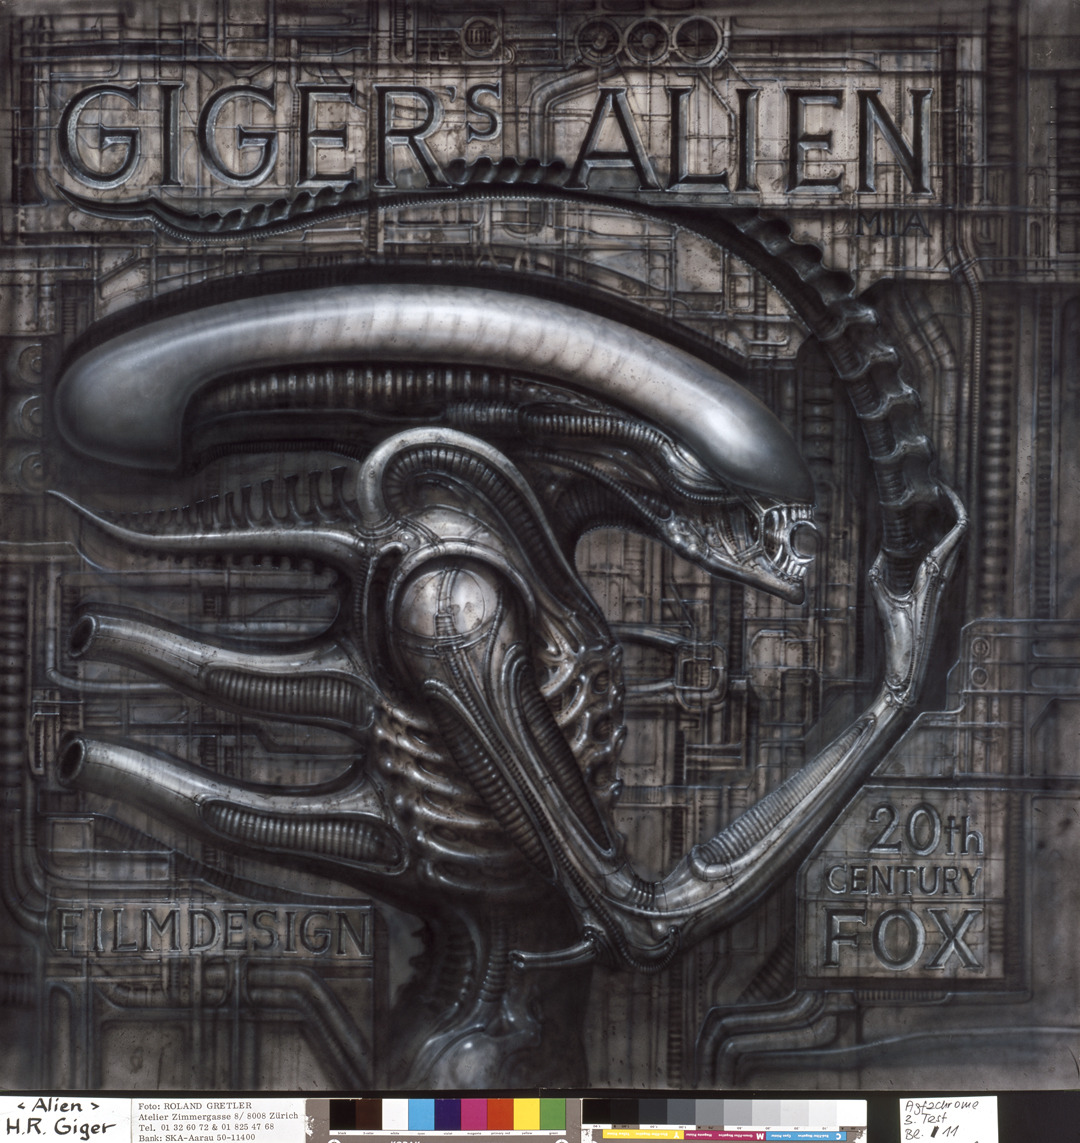 All the paintings, drawings and sculptures H.R. Giger created for ALIEN and ALIEN3 are on permanent display at the  H.R. Giger Museum  in Gruyeres, Switzerland. The Darkened Rooms team are very grateful for the museum's support of our Alien screenings.